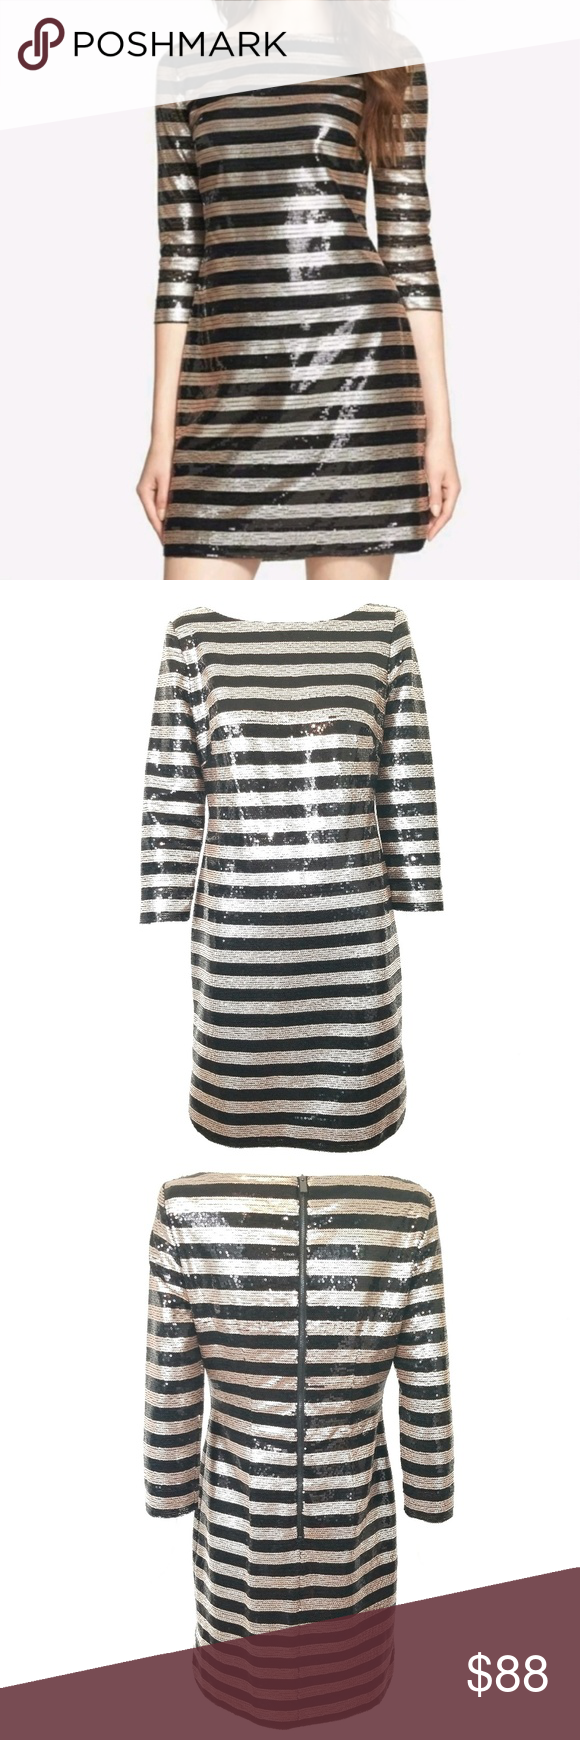 Vince camuto sequin black gold stripe dress size in my posh